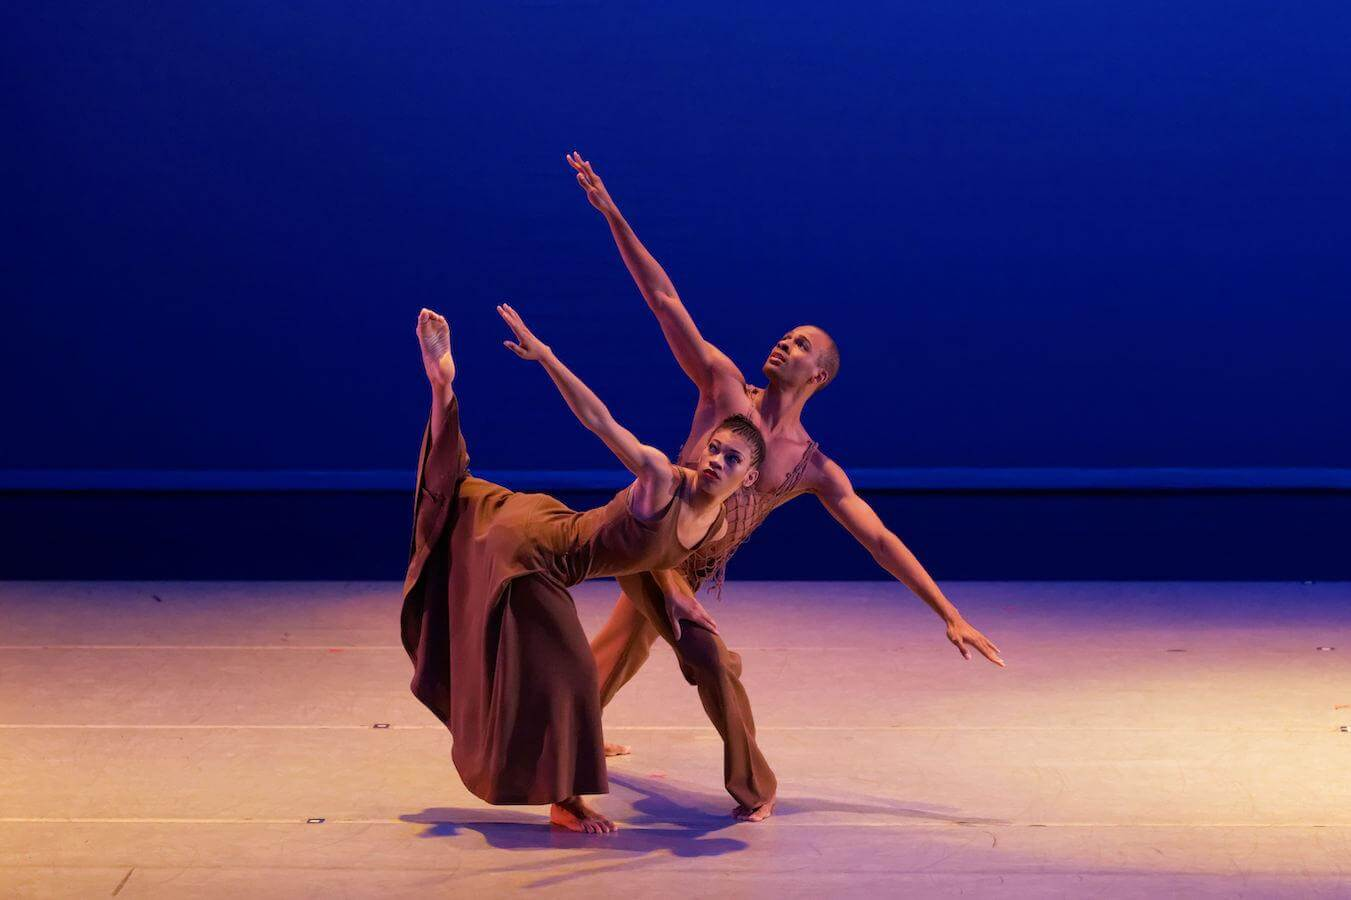 Ghrai DeVore-Stokes and Yannick Lebrun in Revelations, photo by Pierre Wachholder